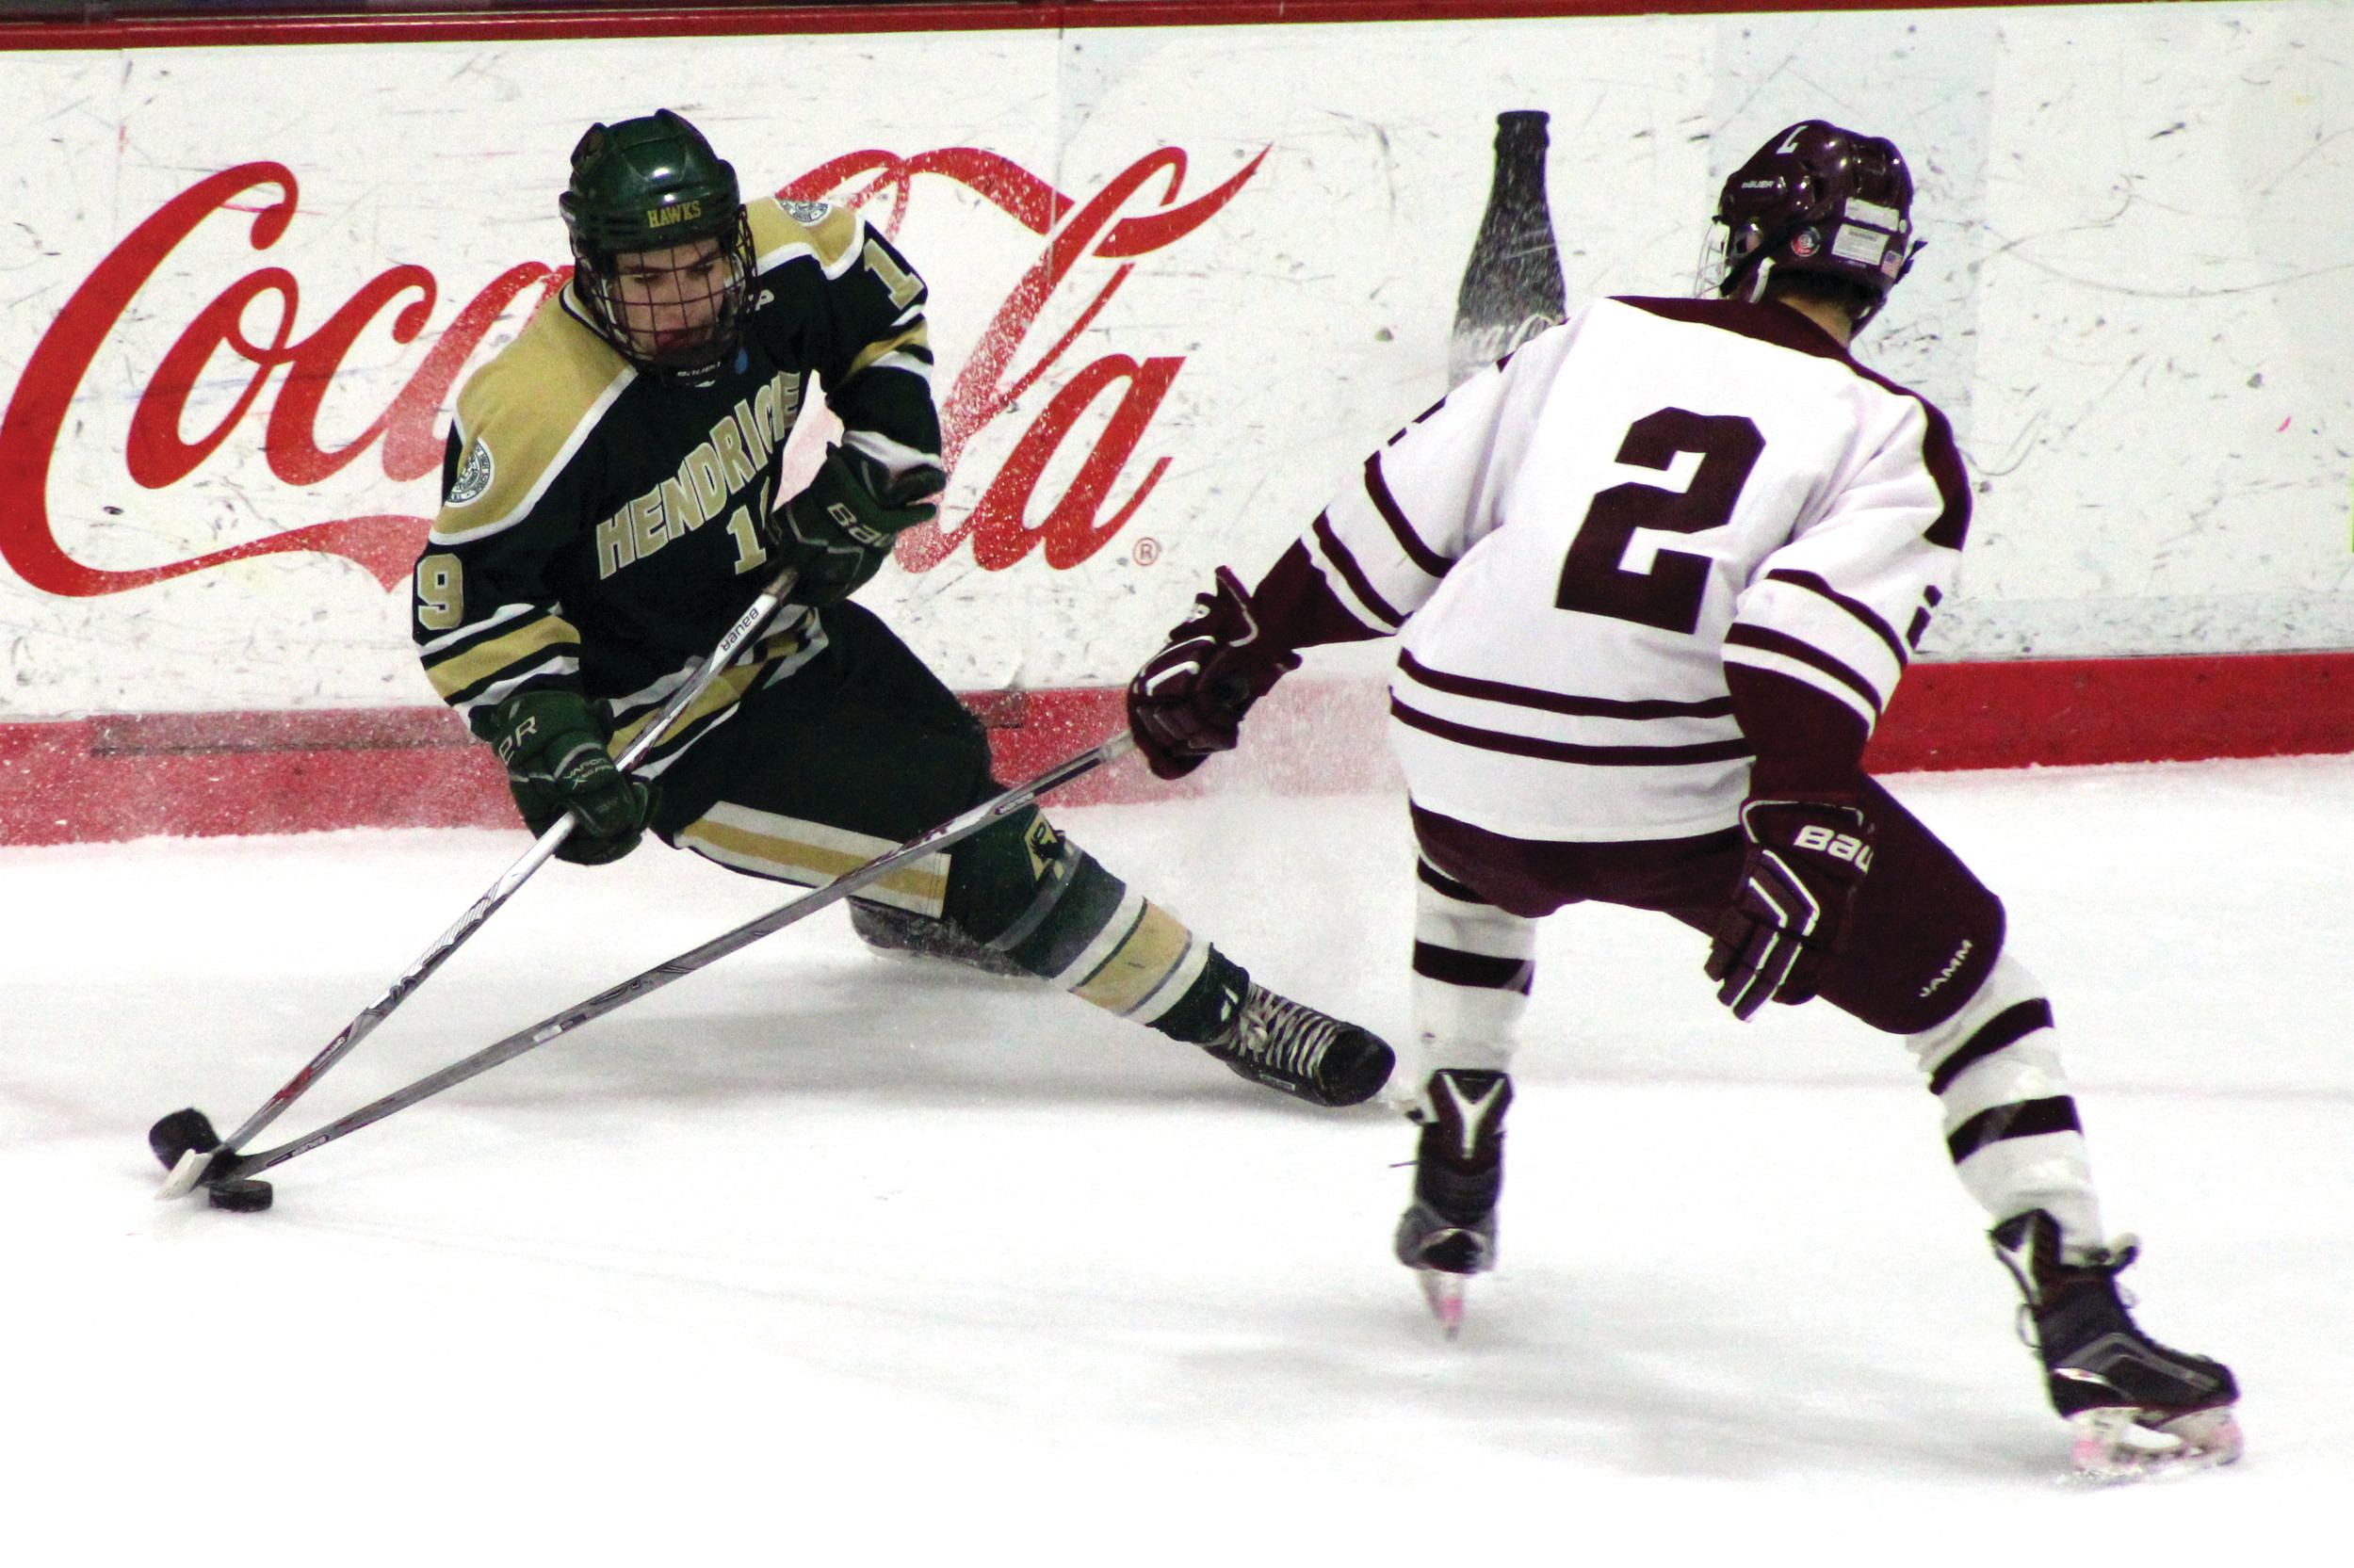 ATTACKING: Hendricken's Dan Cavanagh tries to cut to the middle of the ice against La Salle defenseman Matthew Murphy during Game 2.